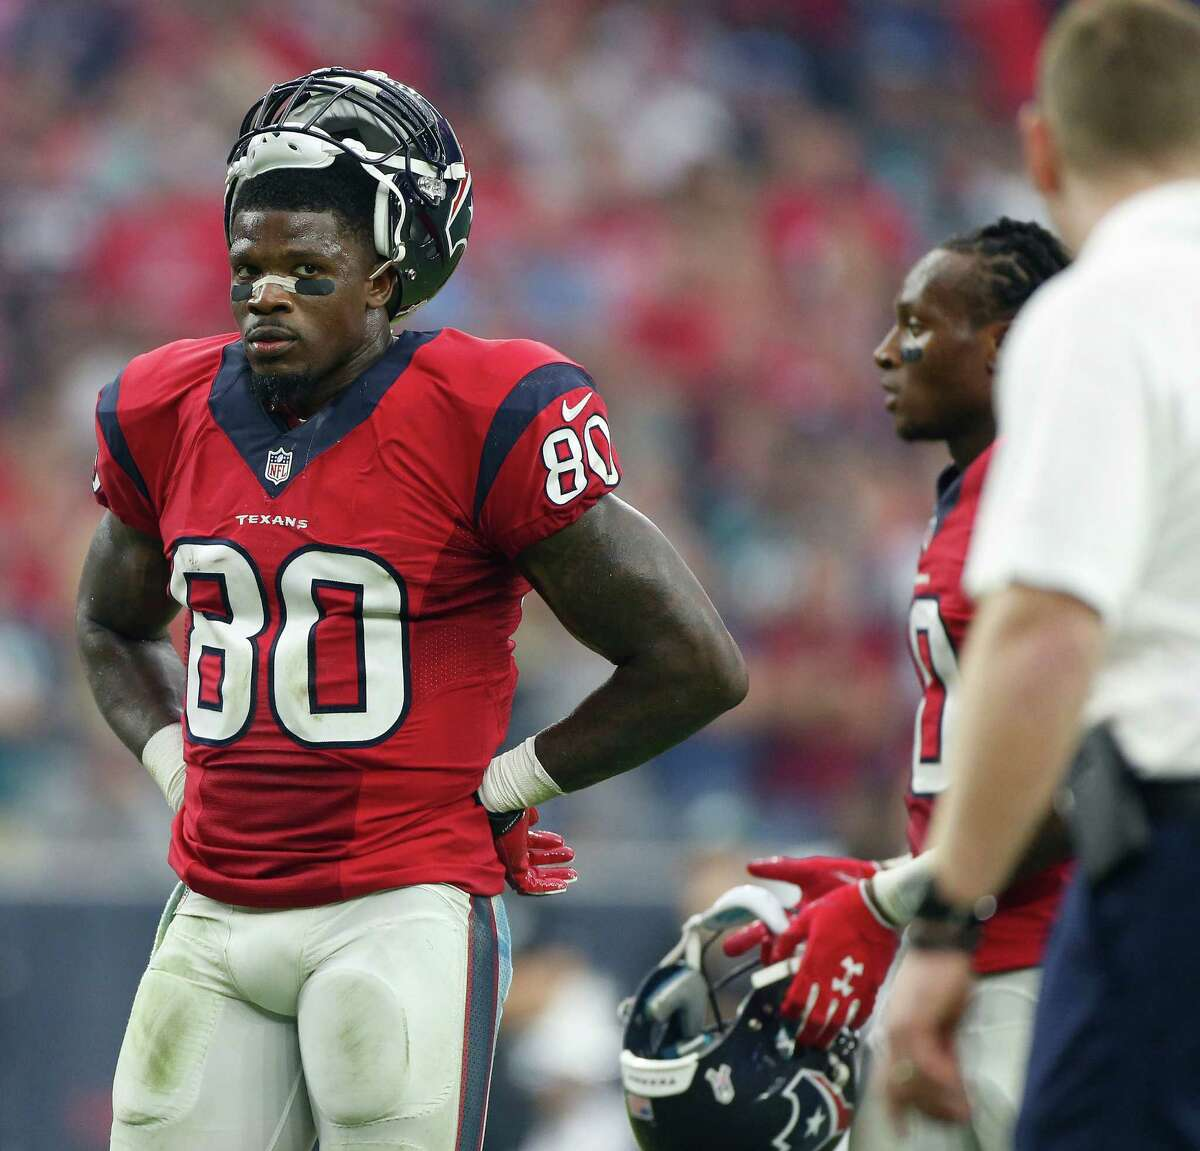 Andre Johnson leaves the field in December after playing in the 169th and, as it turned out, final game of a Texans career that saw him make seven Pro Bowls.